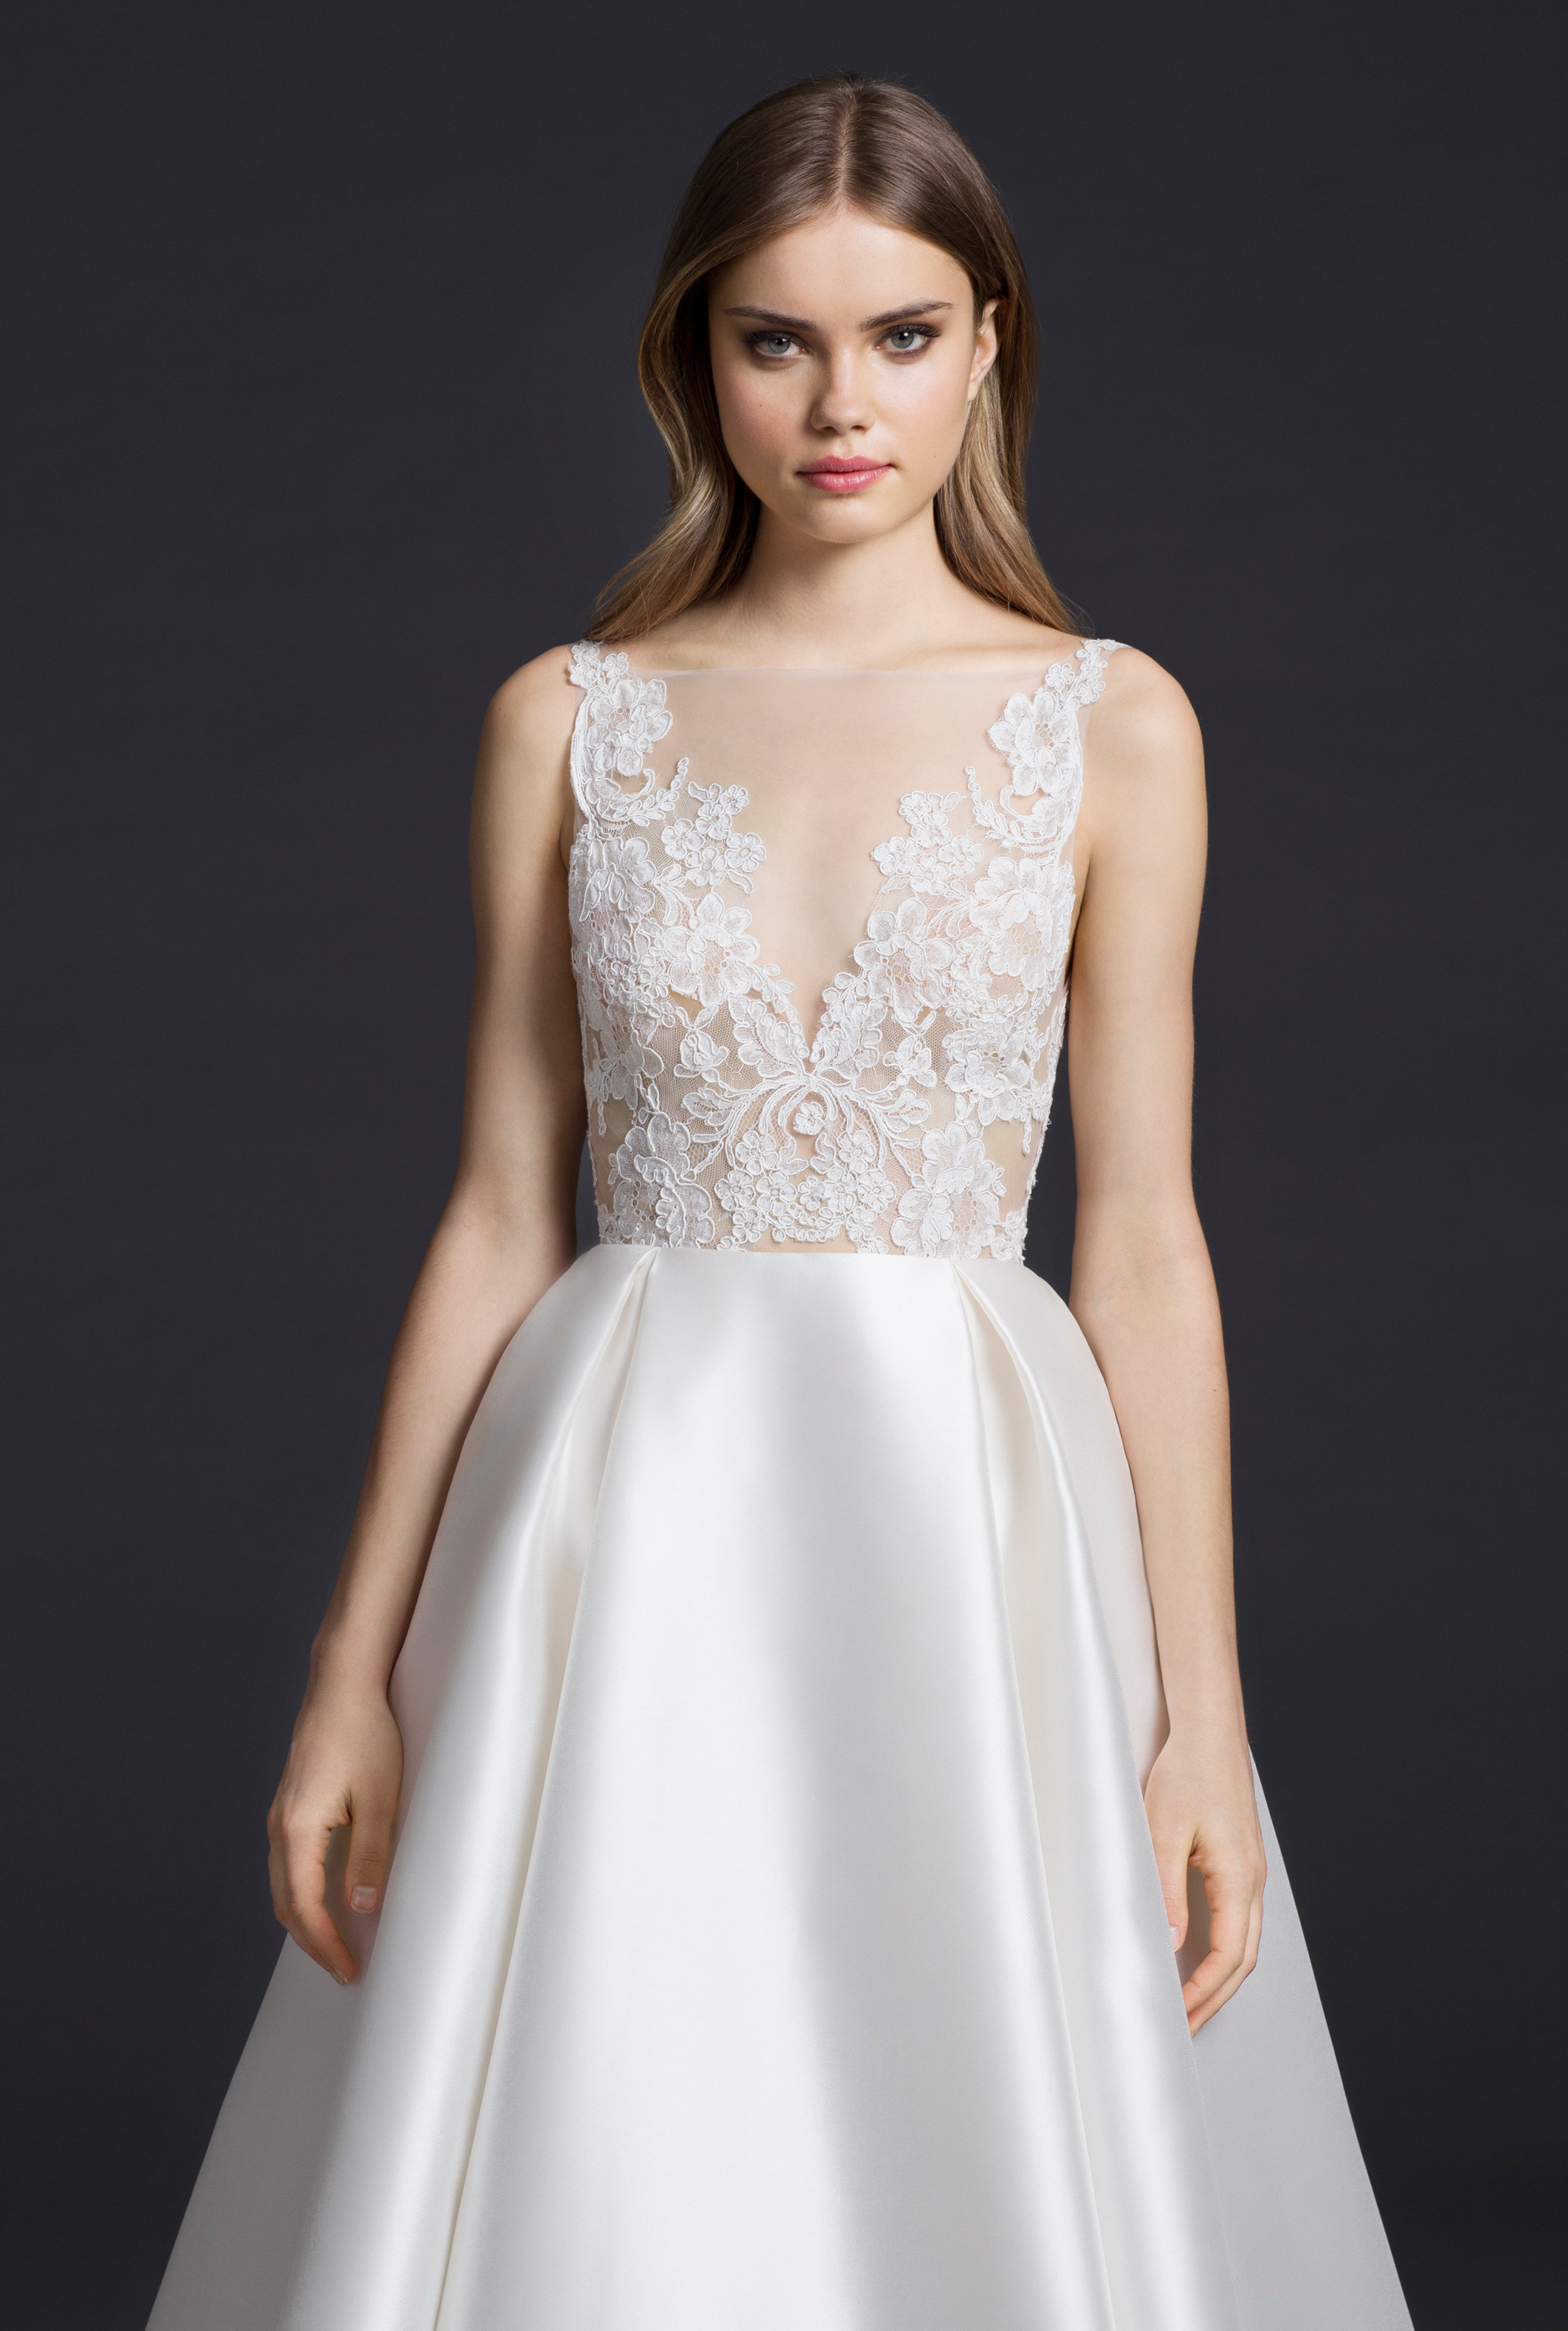 Bridal Gowns and Wedding Dresses by JLM Couture - Style 3658